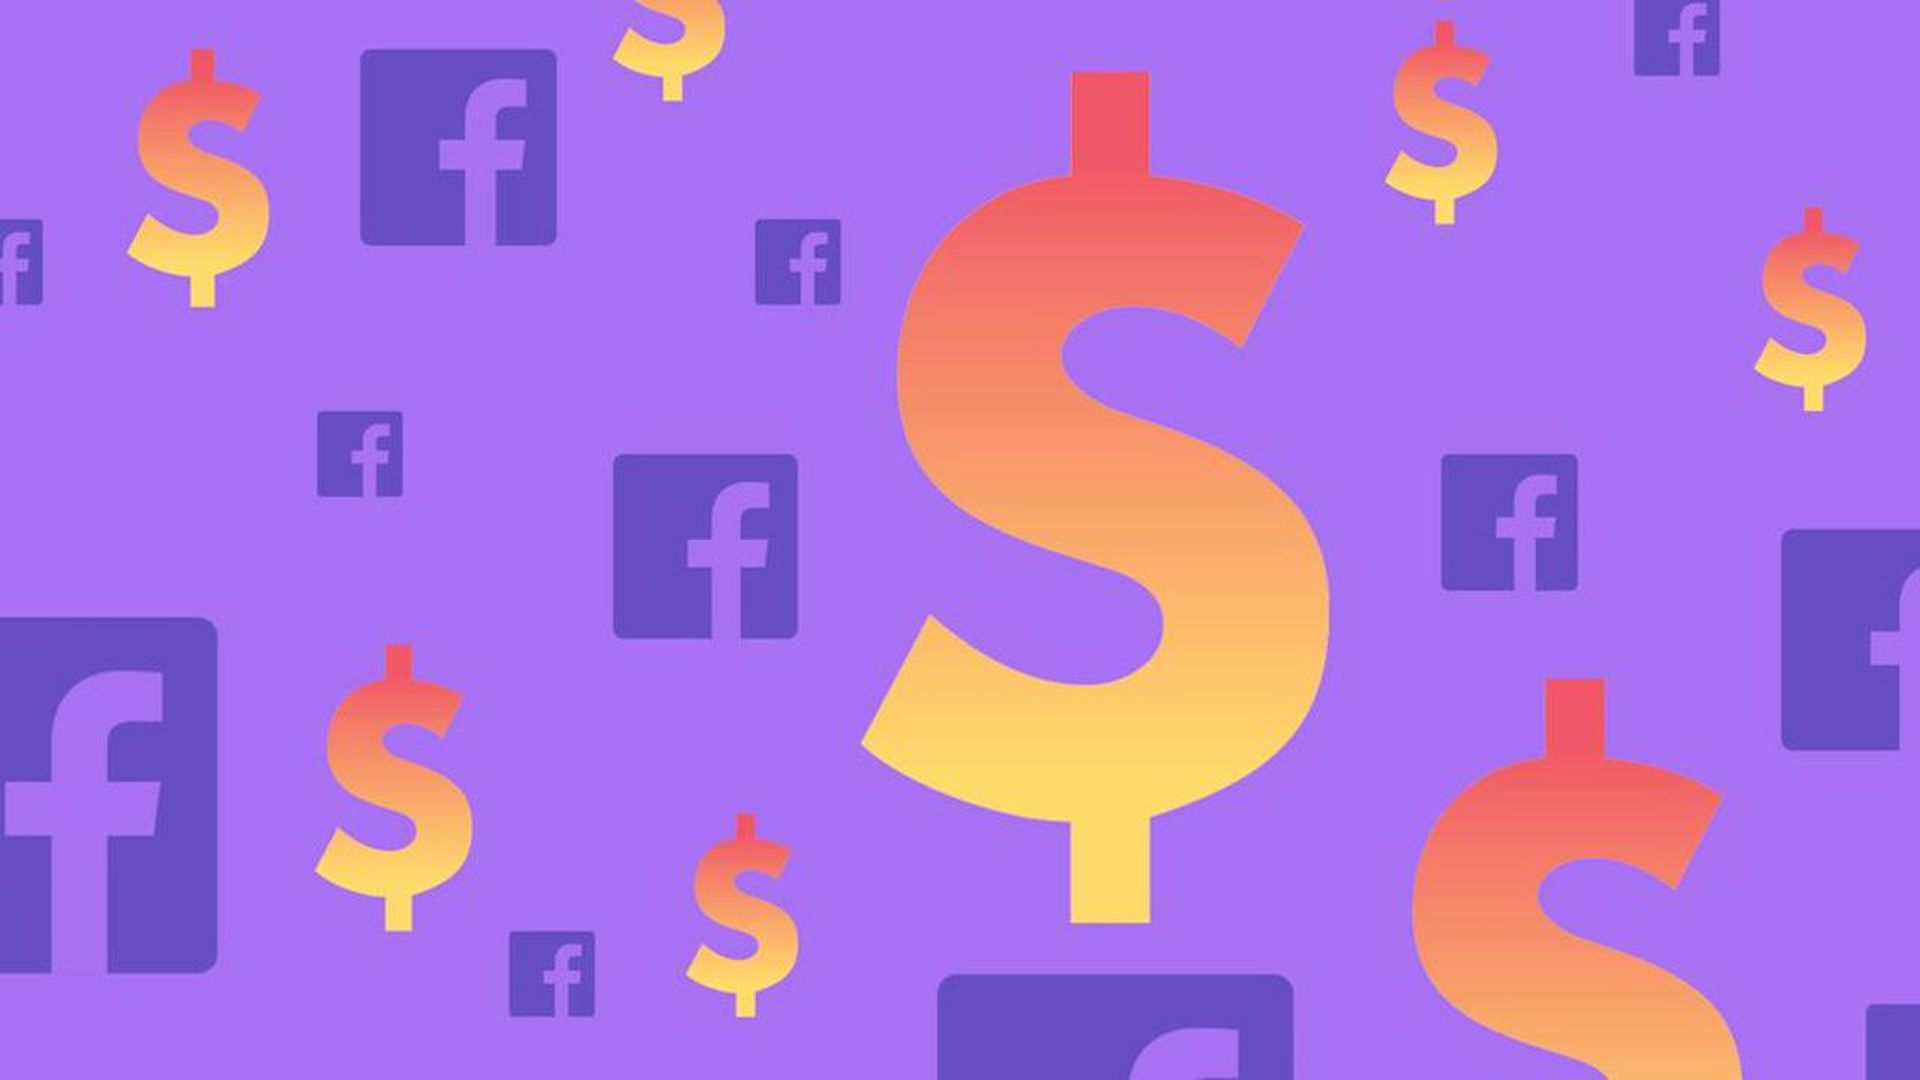 Illustration of Facebook logos floating in a sea of dollar signs